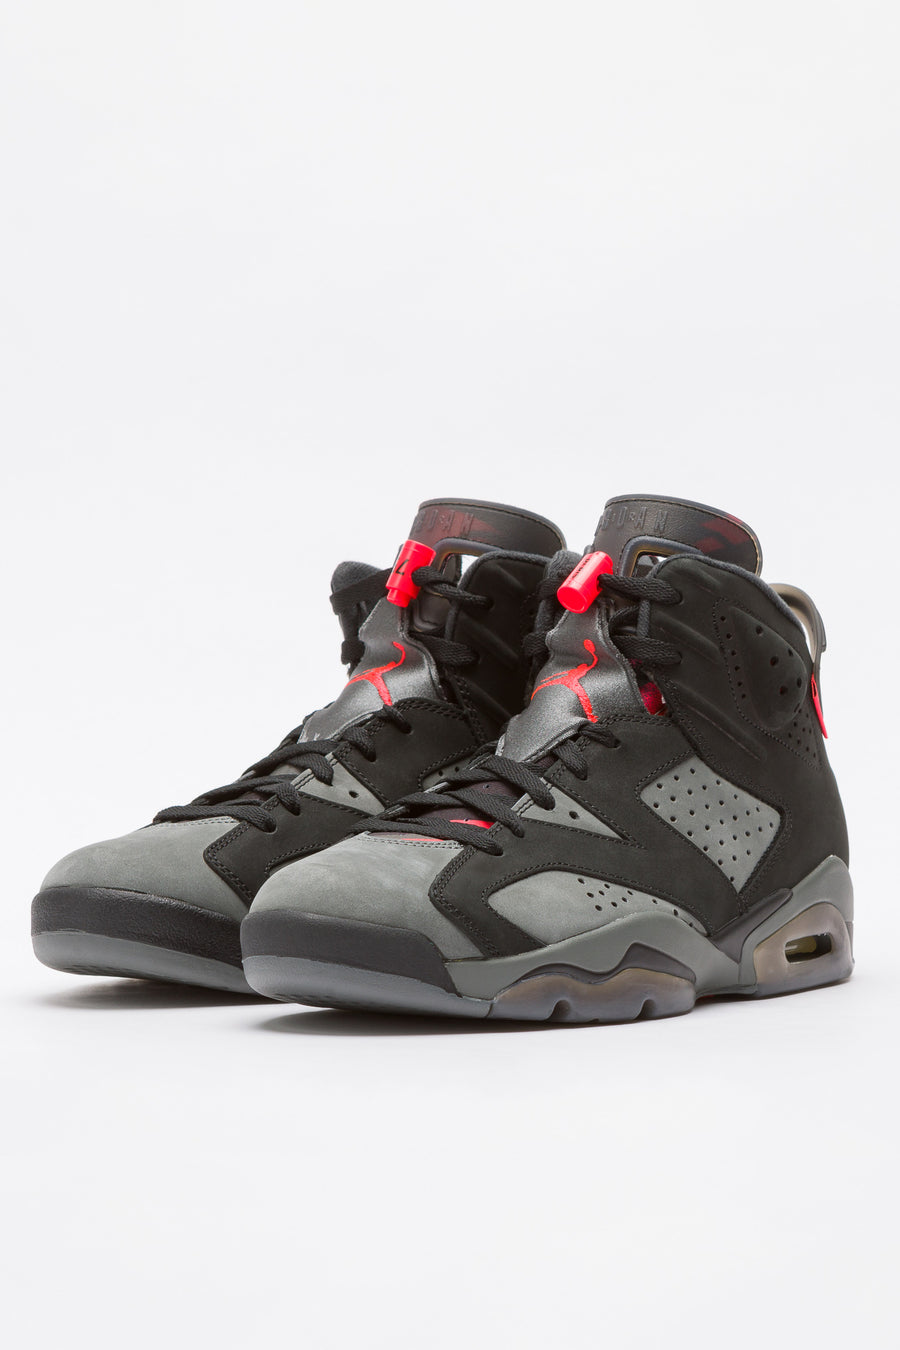 Jordan Air Jordan 6 Retro Paris Saint-Germain in Iron Grey/Black - Notre